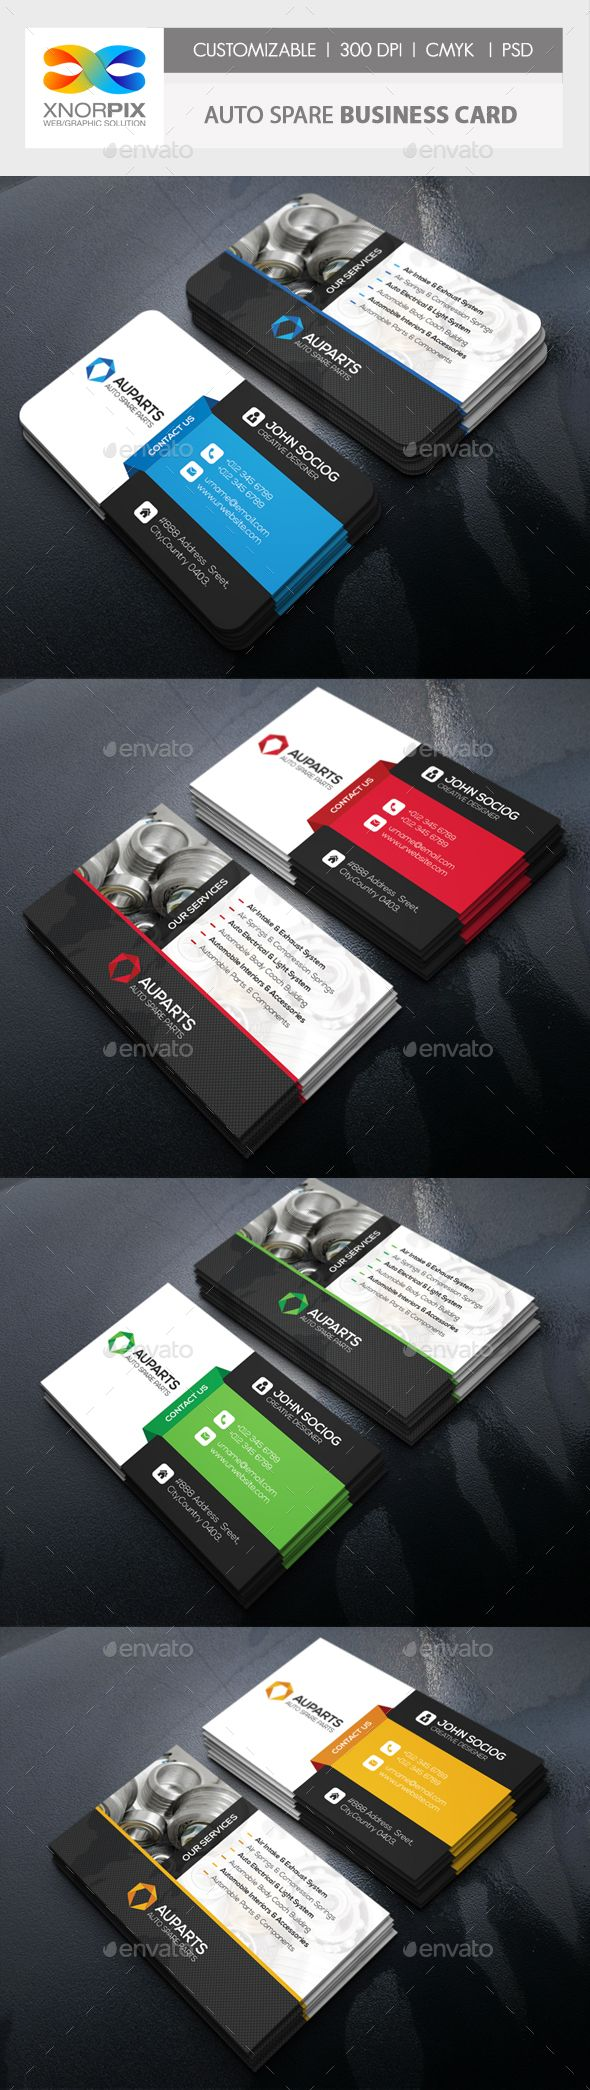 Auto Spare Business Card | Auto spares, Business cards and Photoshop